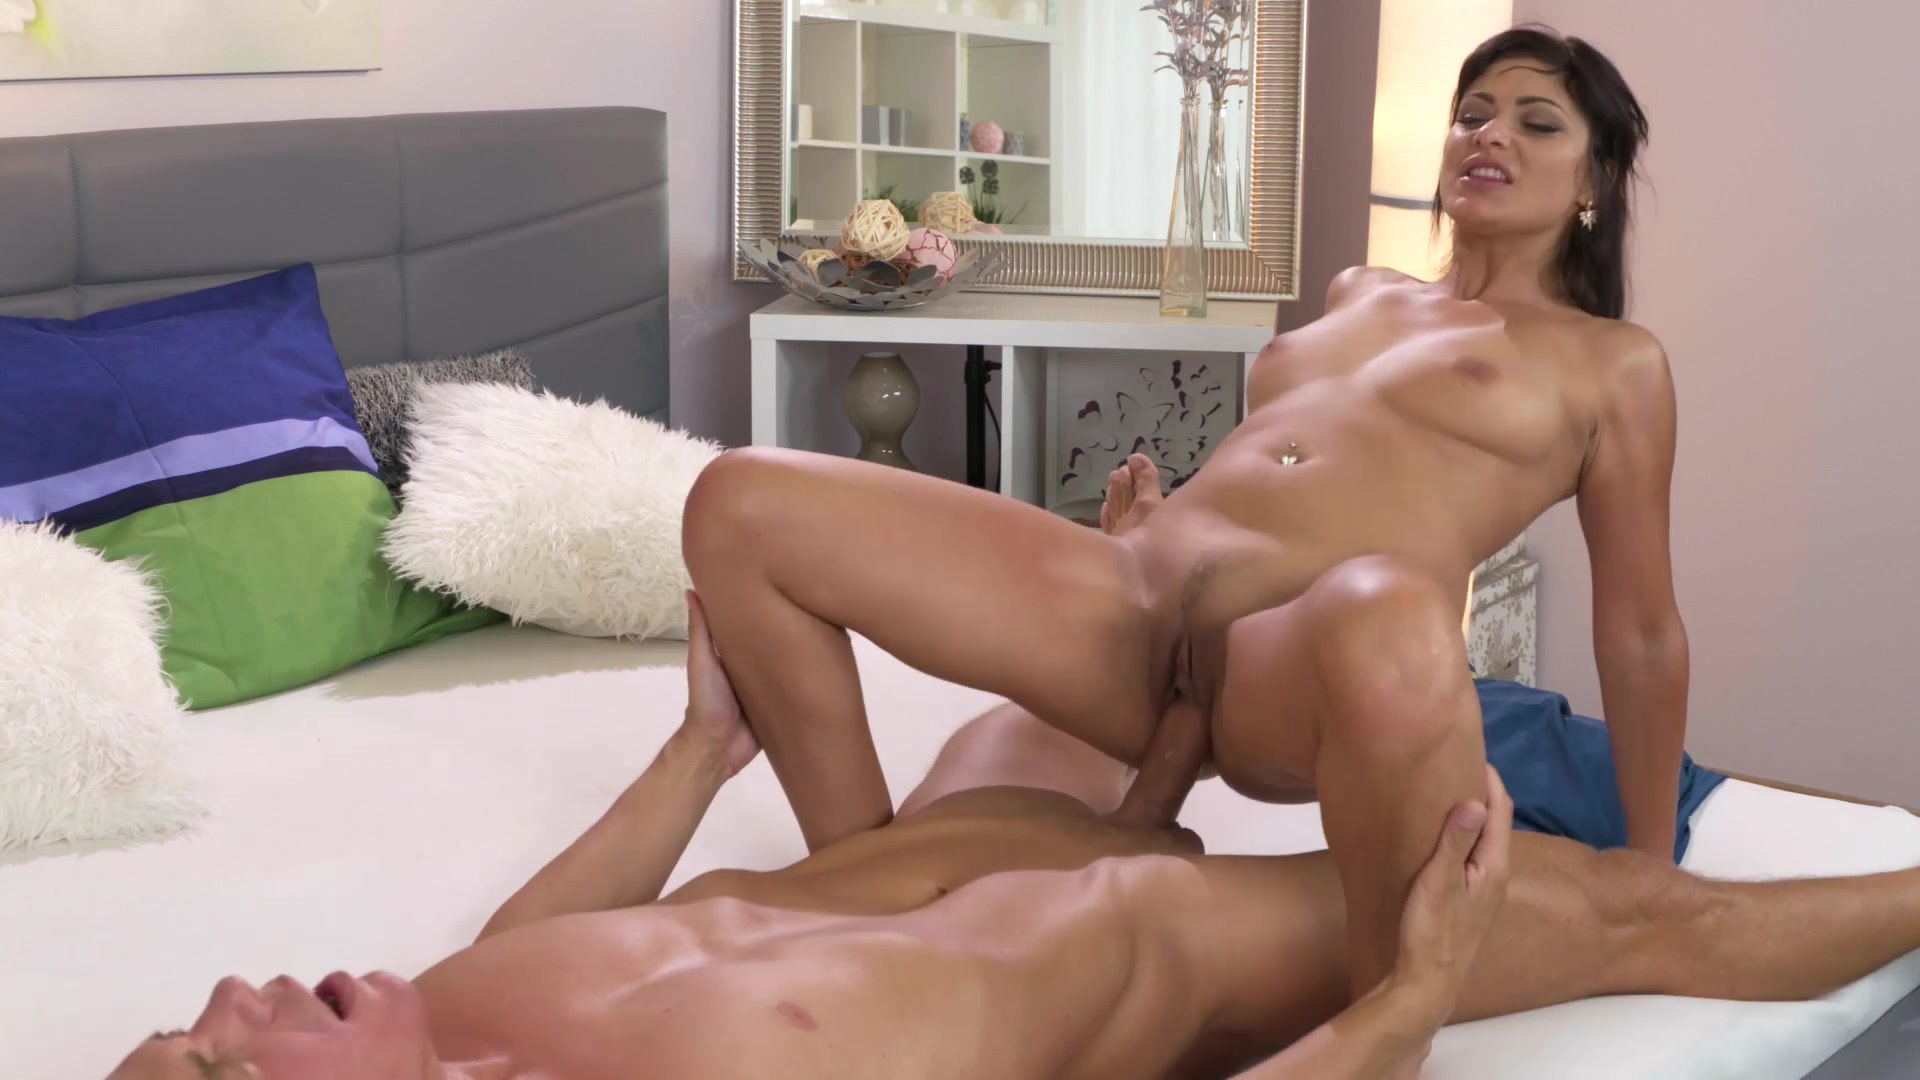 Dark haired beauties porn, clitorus having orgasm video